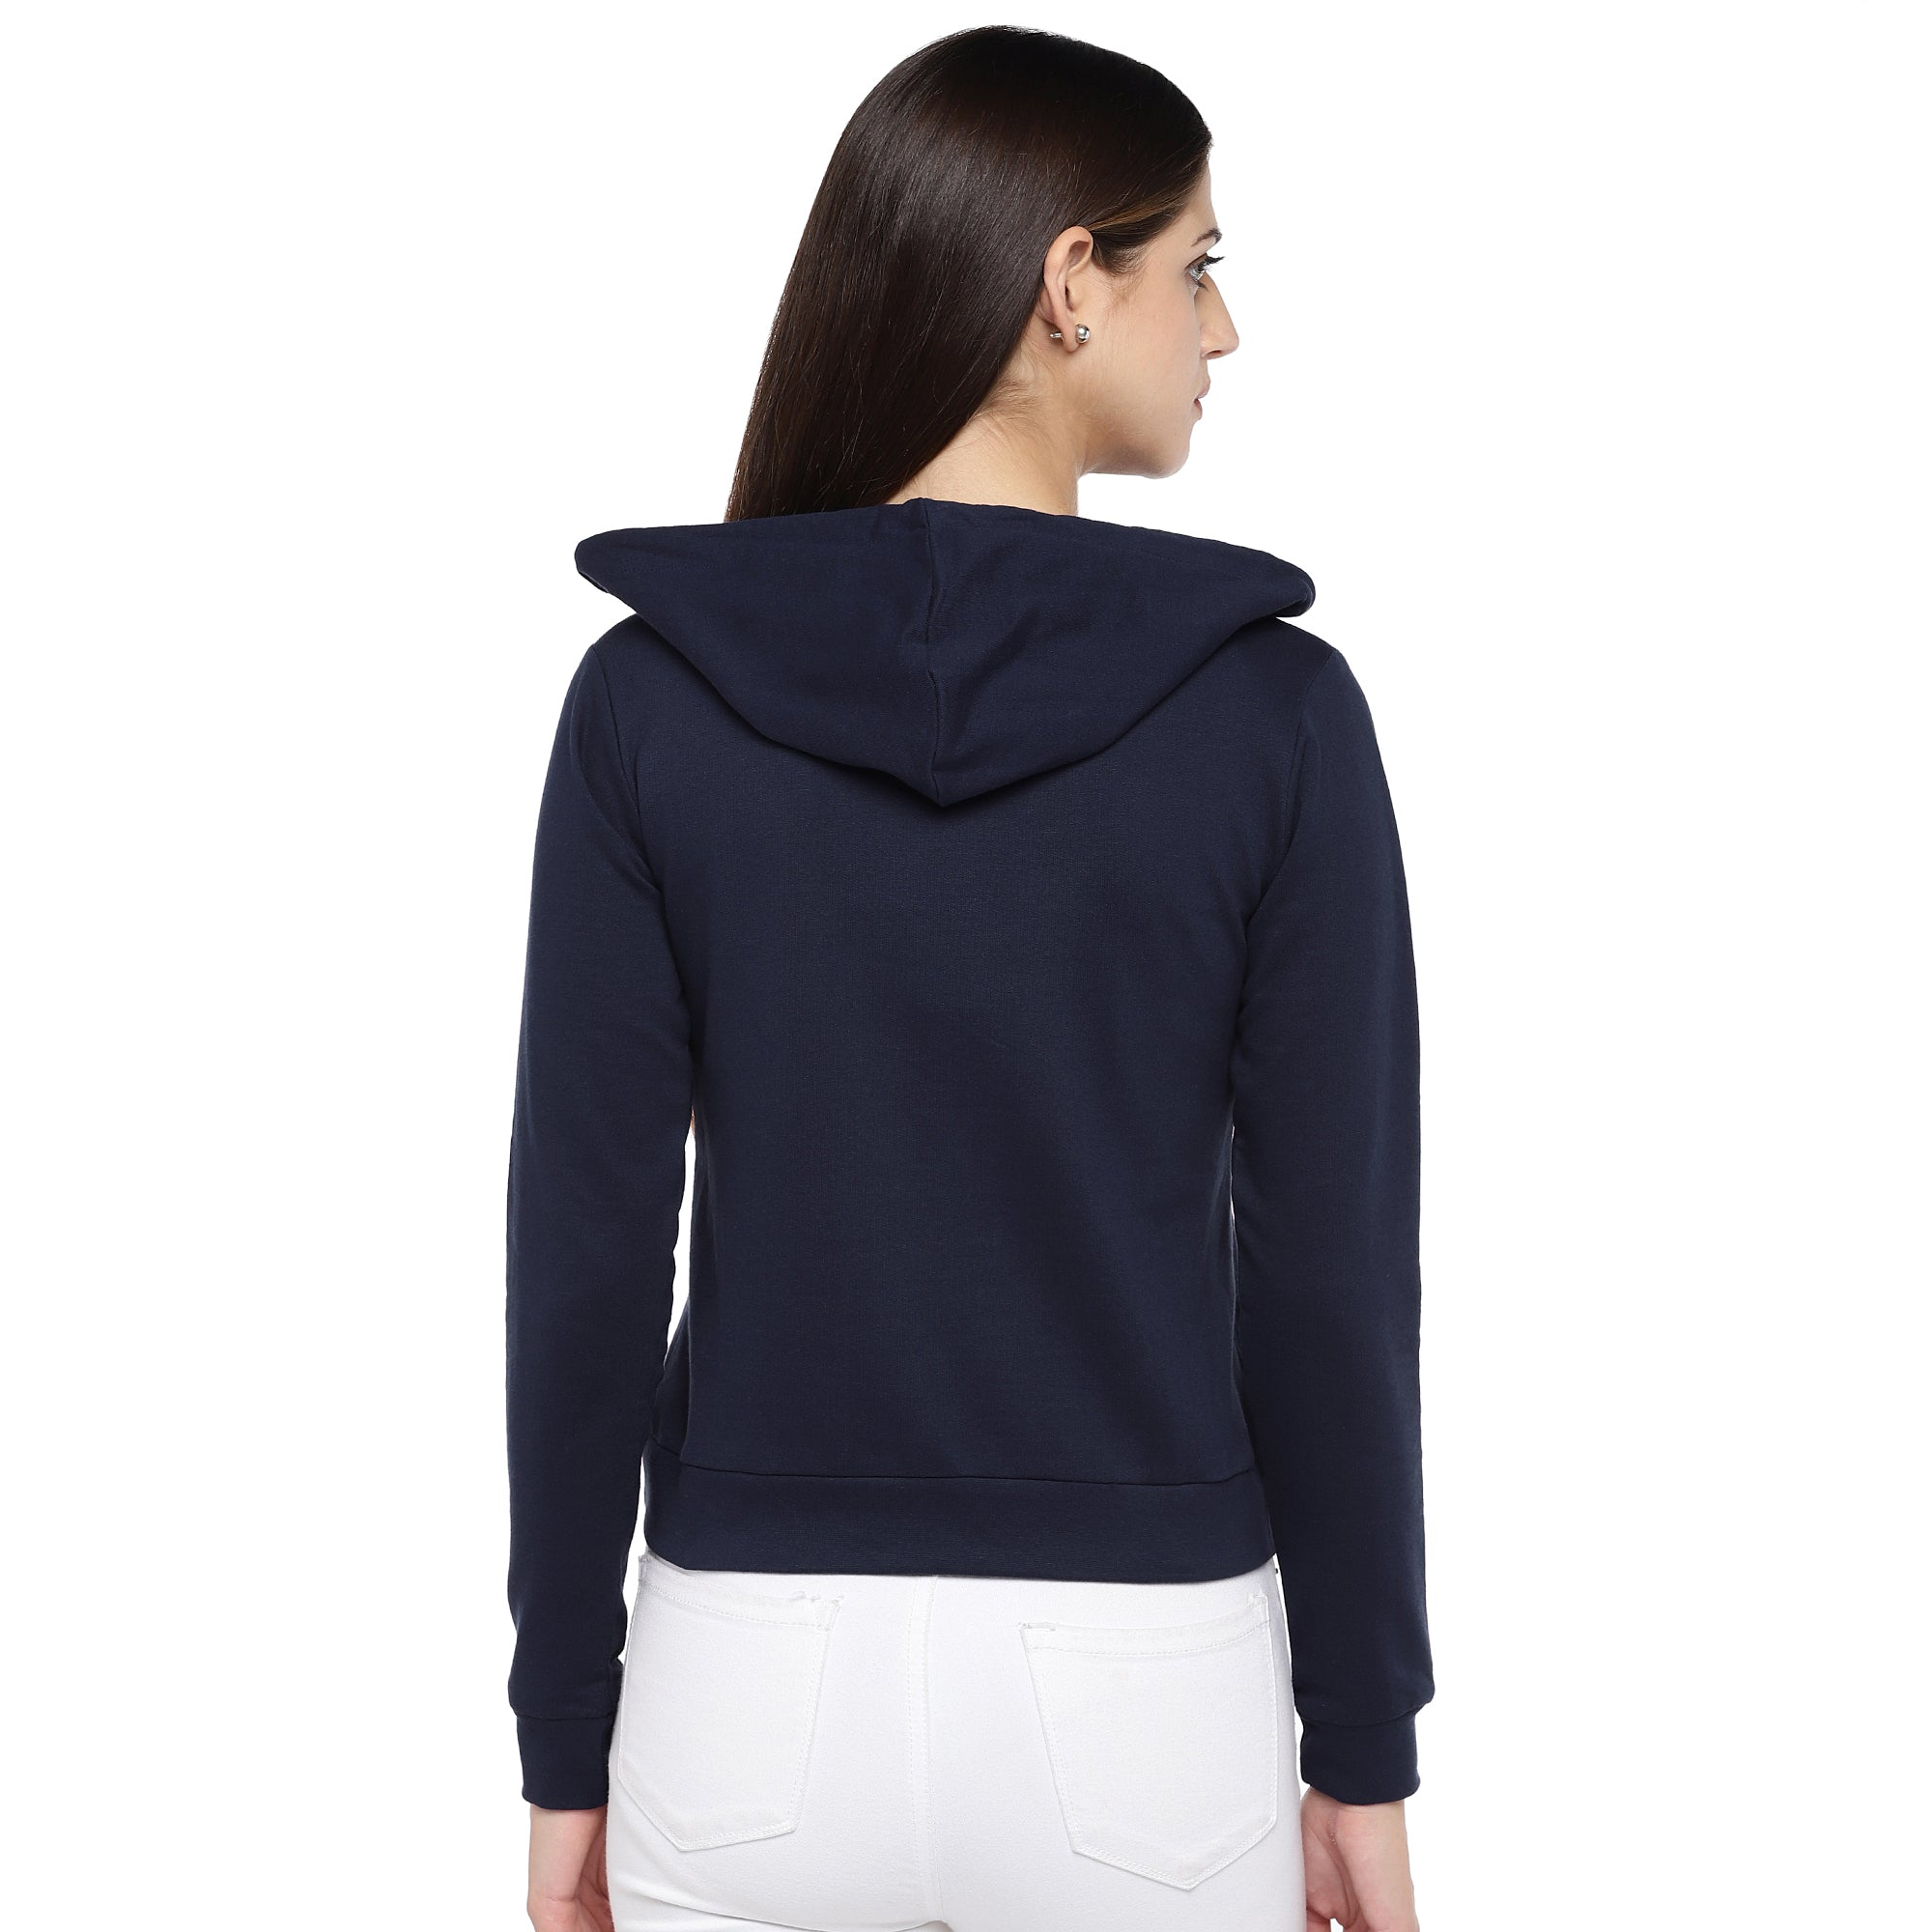 Navy Blue Printed Hooded Sweatshirt-3